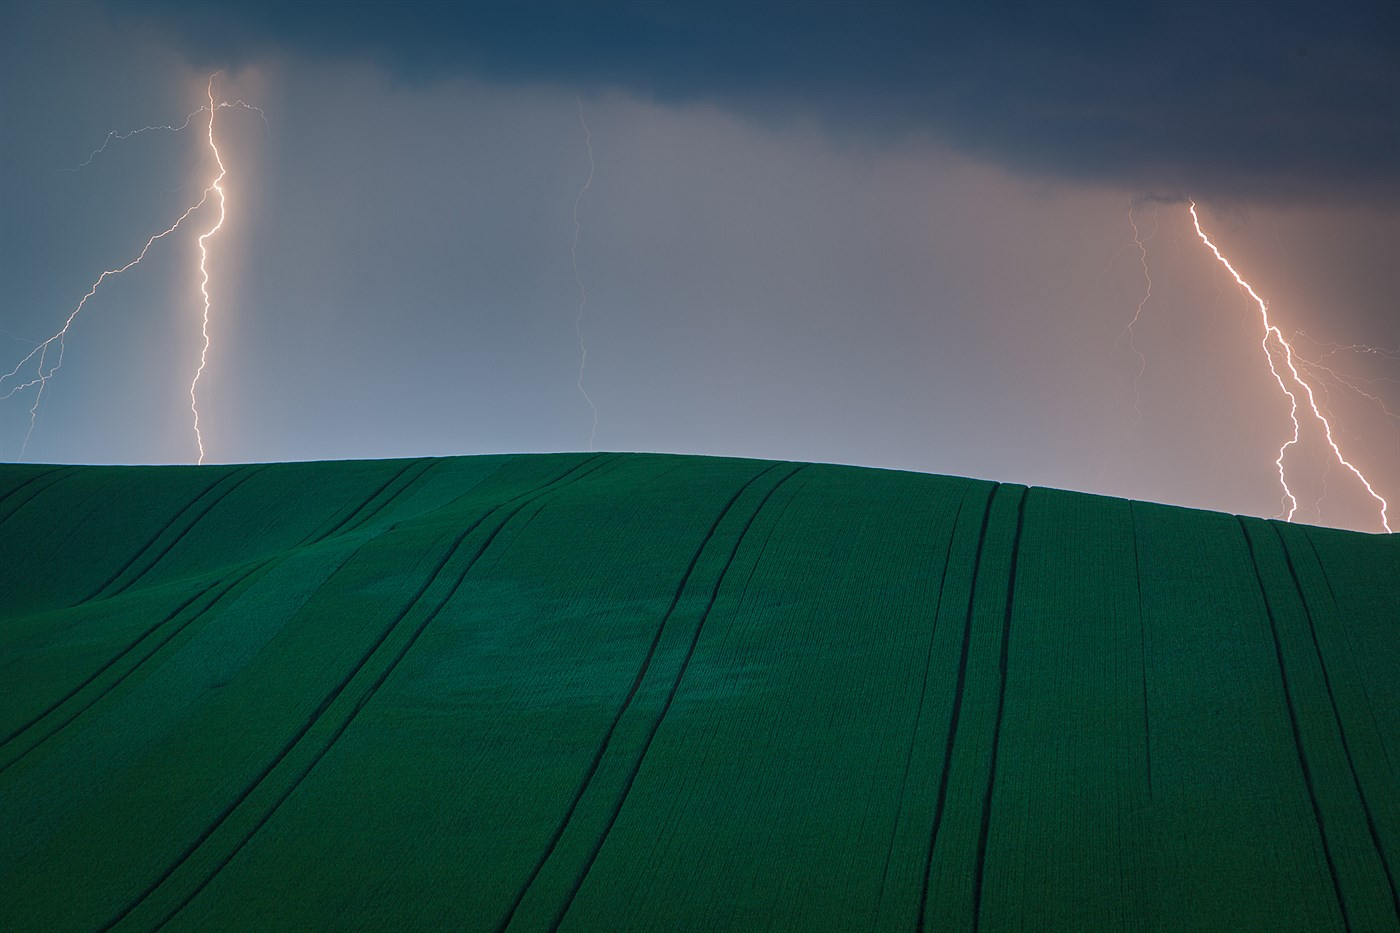 Storm in South Moravia, photo